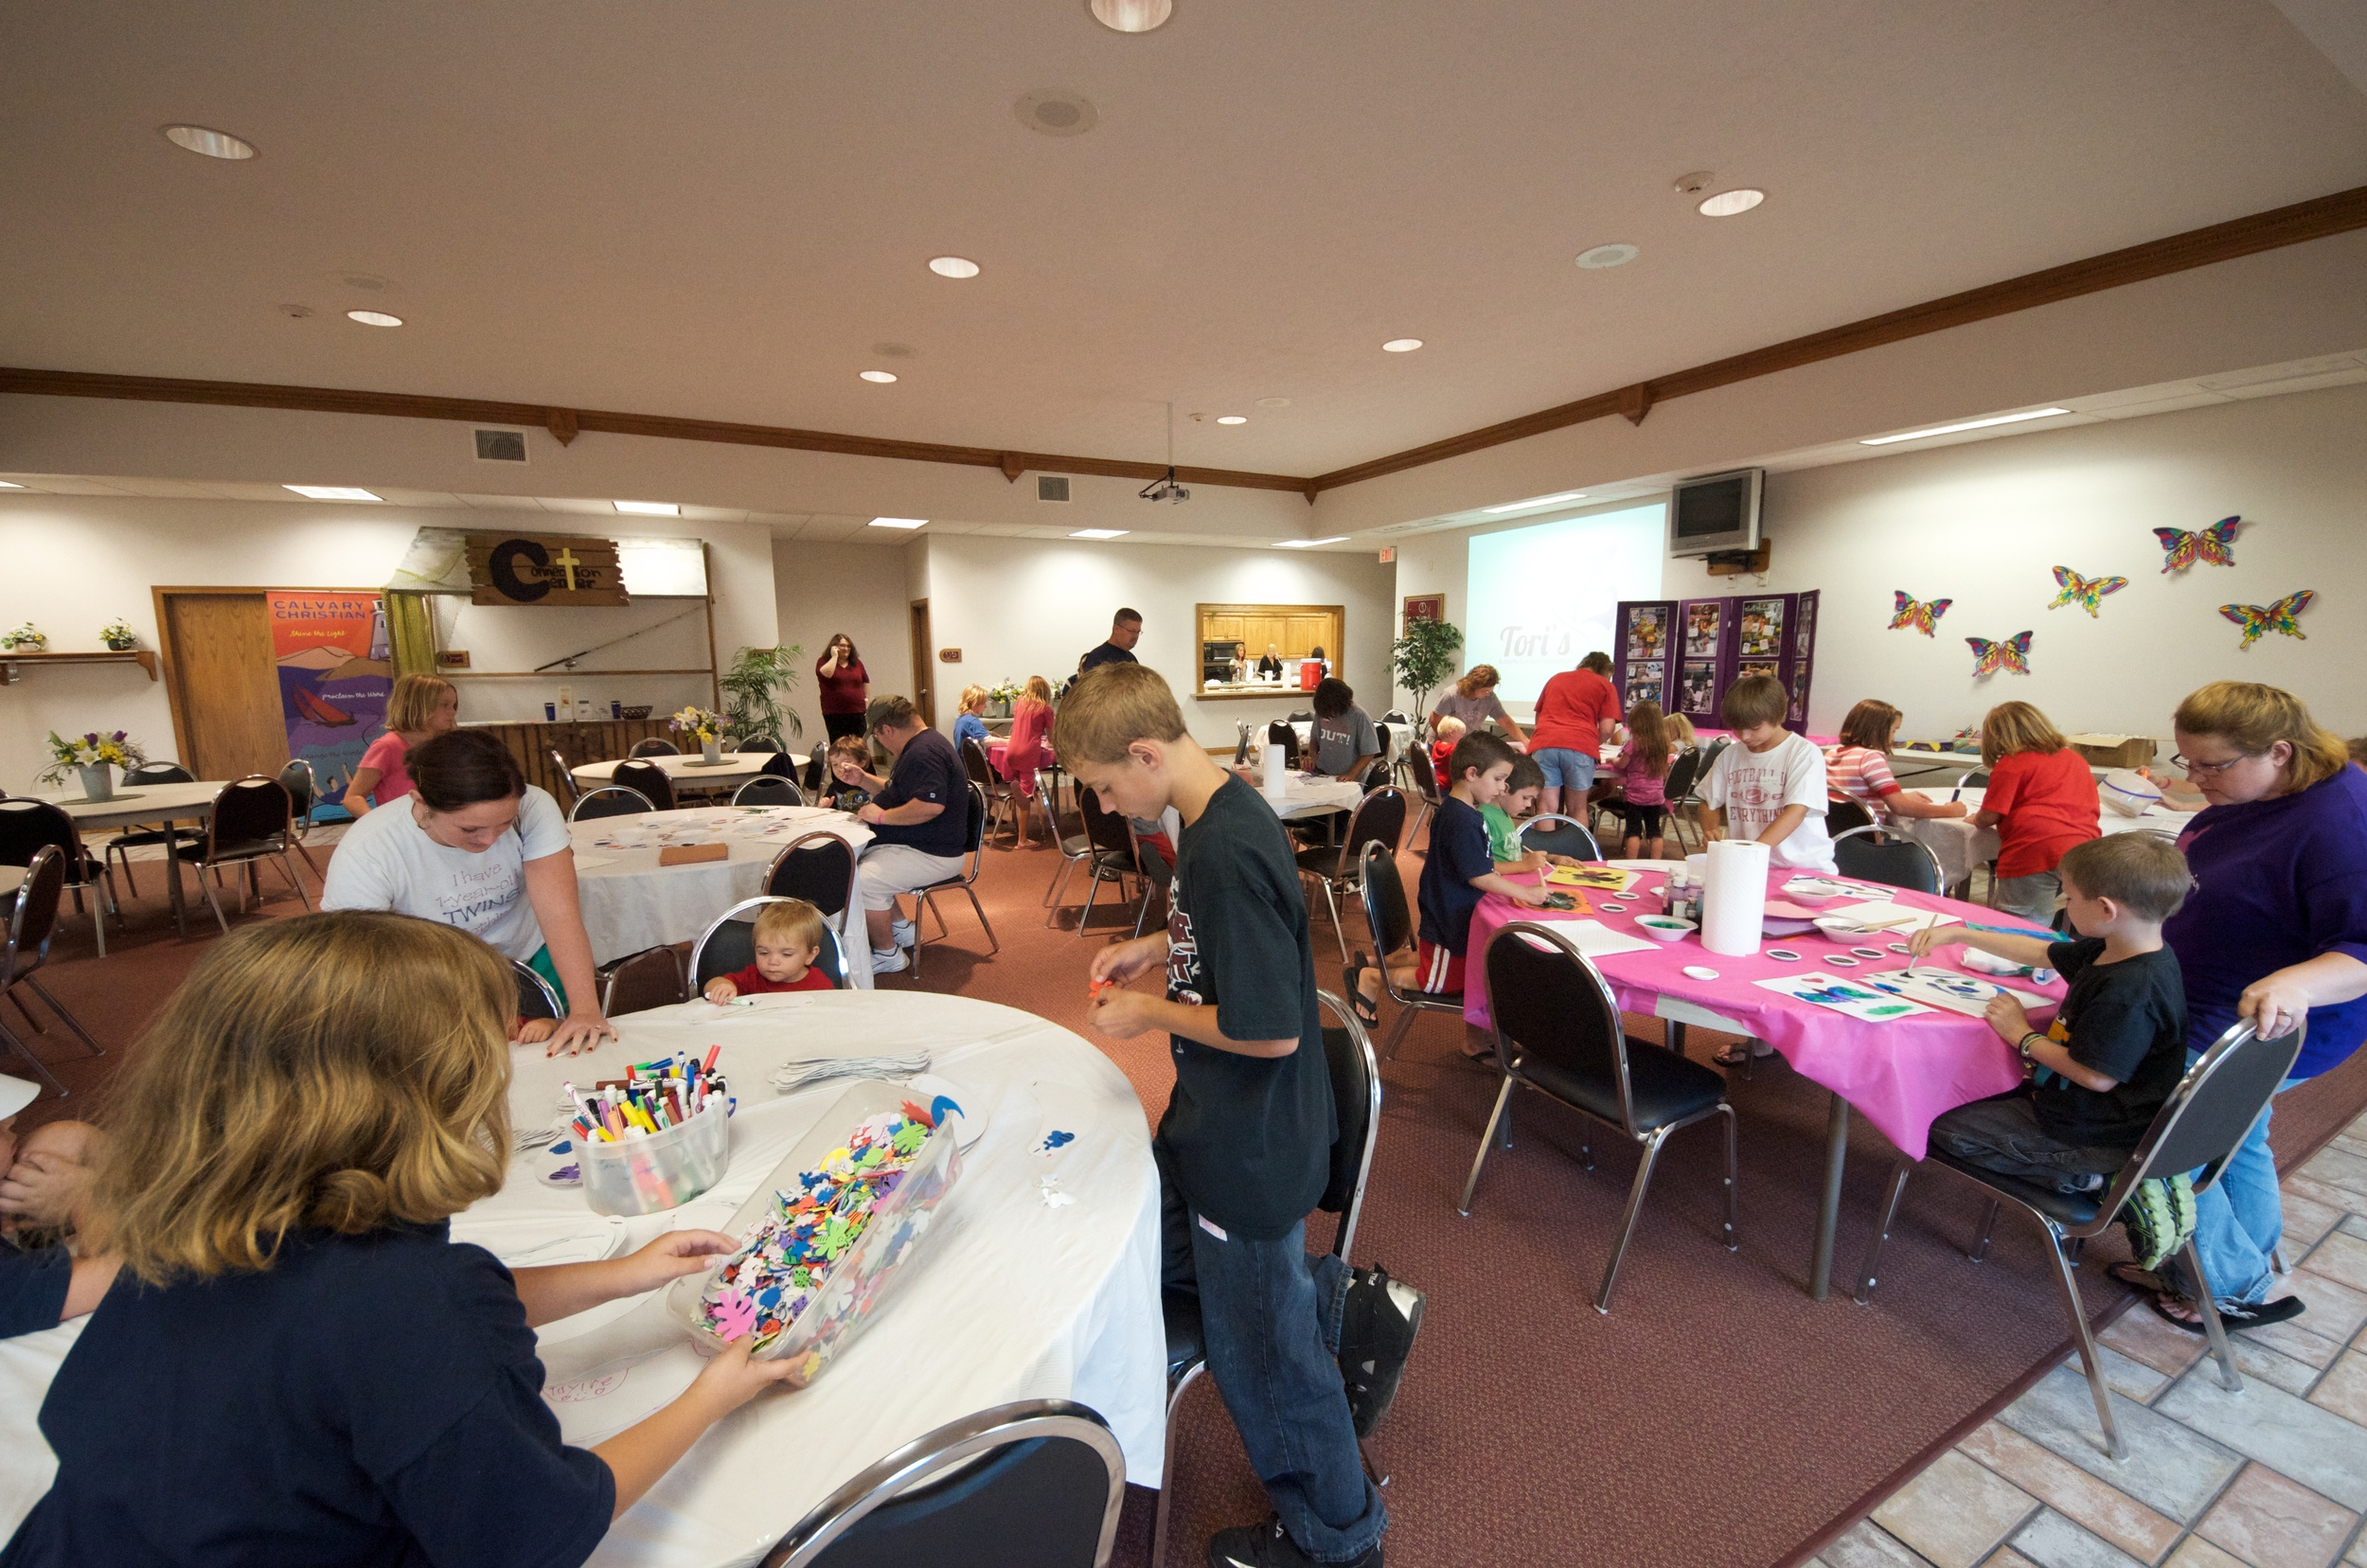 KIds ARt Church 9 12 2011   95167.jpg